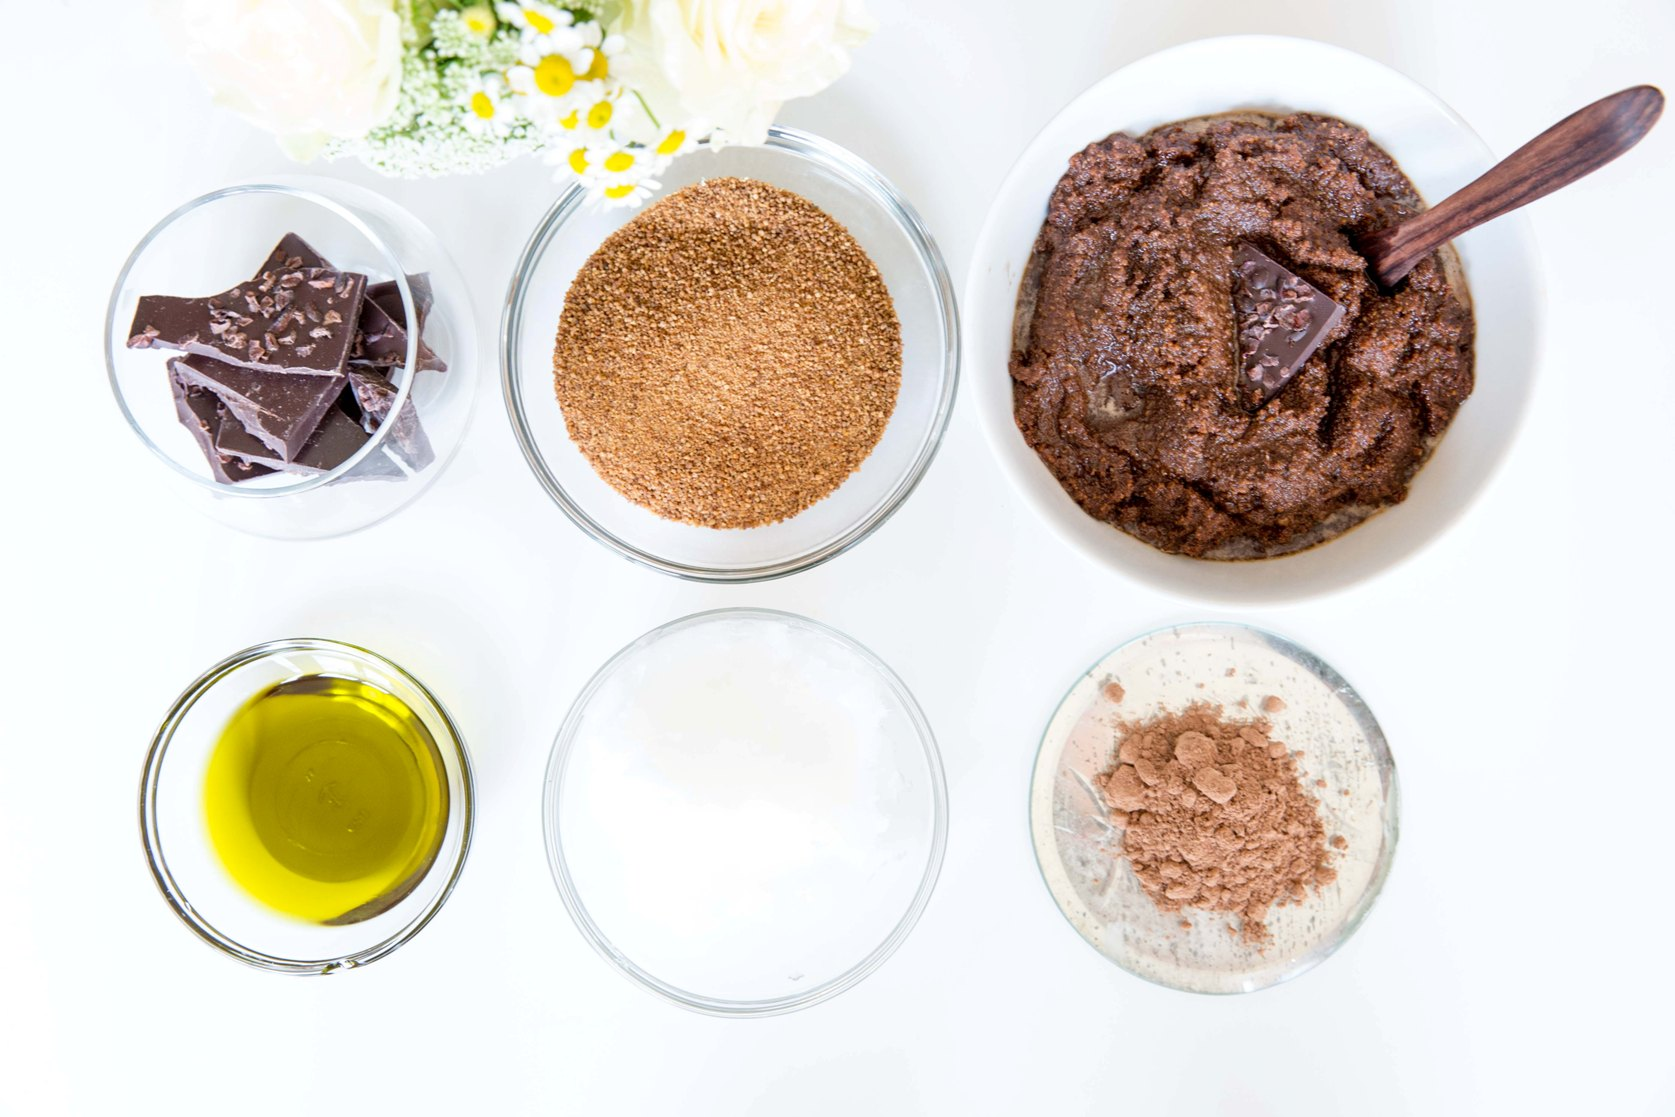 DIY chocolate sugar scrub 2